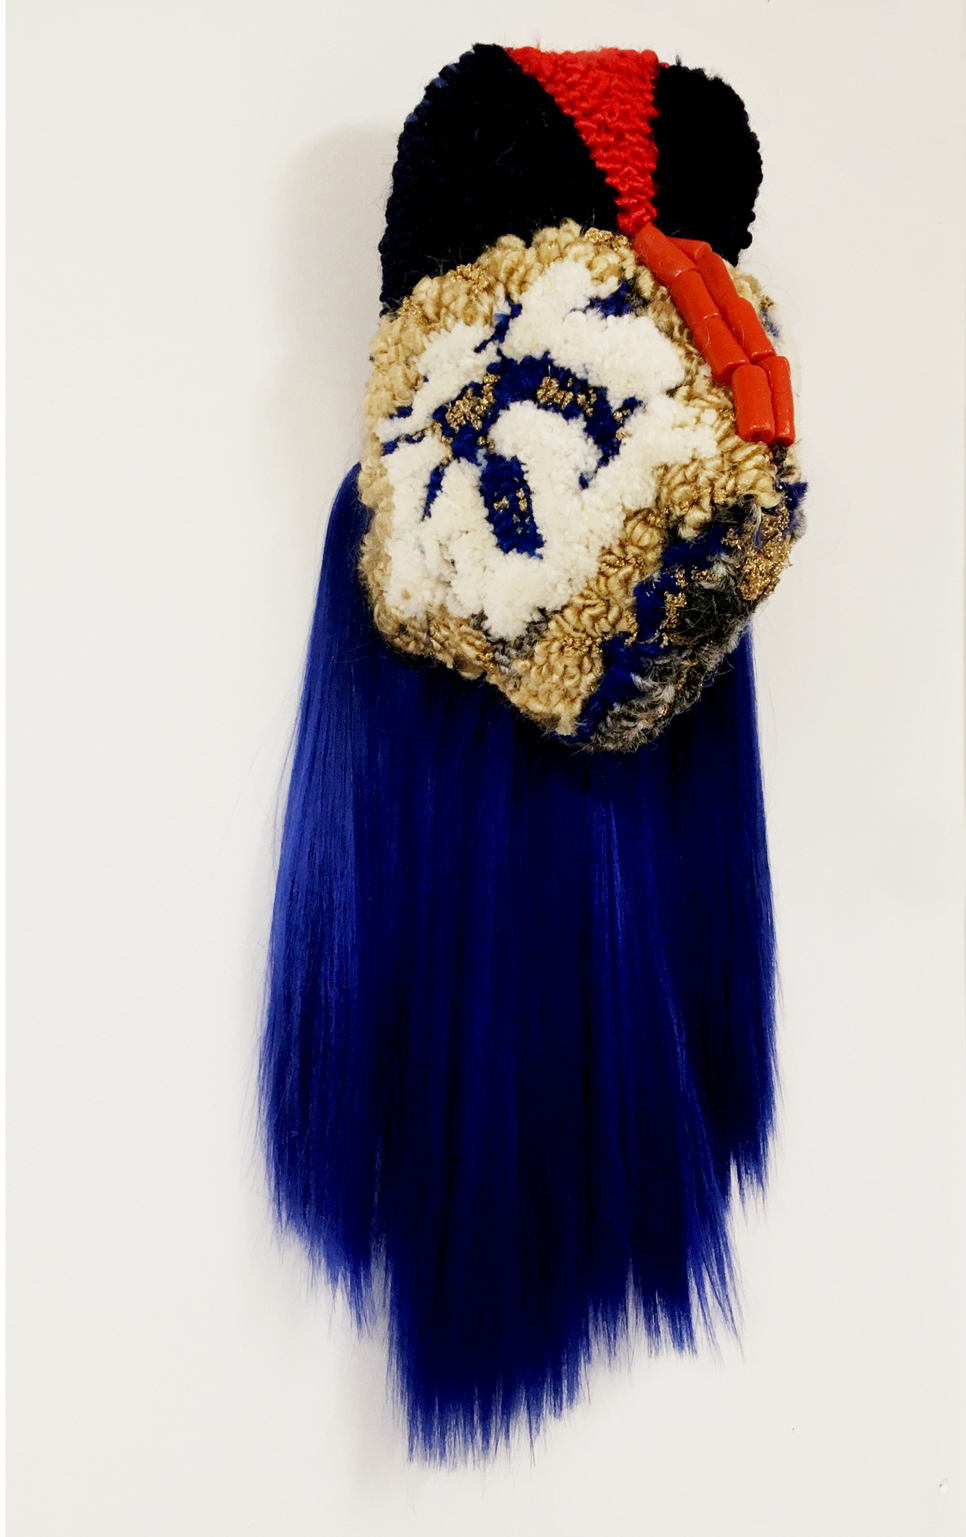 The Tinwomen, 75x30x25 cm, tufted yarn and artificial hair, beads, 2020 image Anna Perach